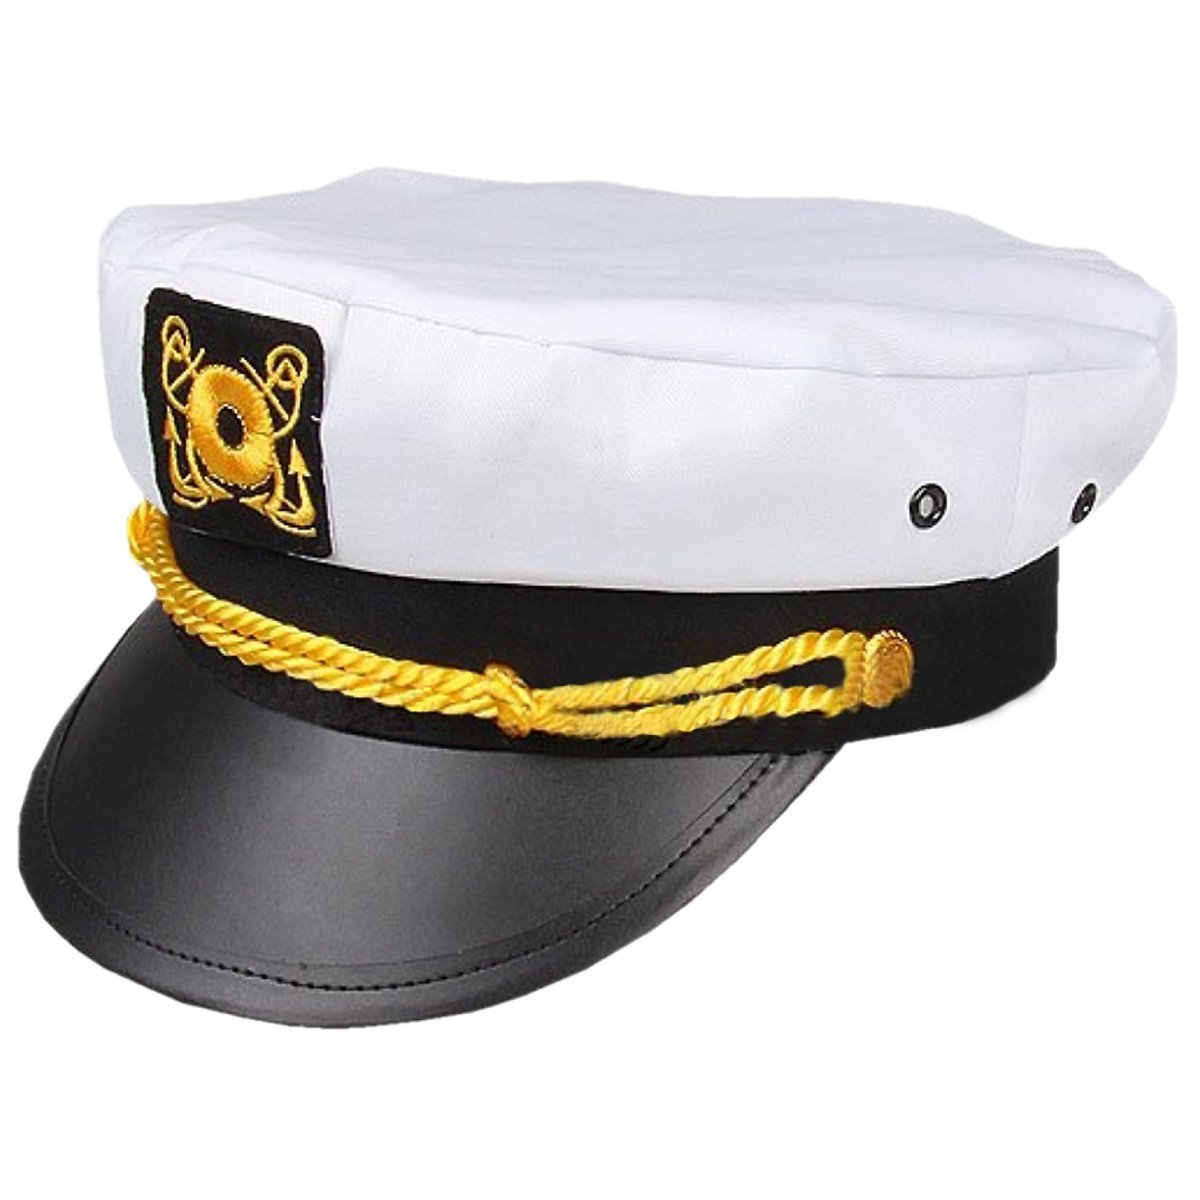 Adult Yacht Captain Hat Costume Accessory-One size Rhode Island Novelty 16502